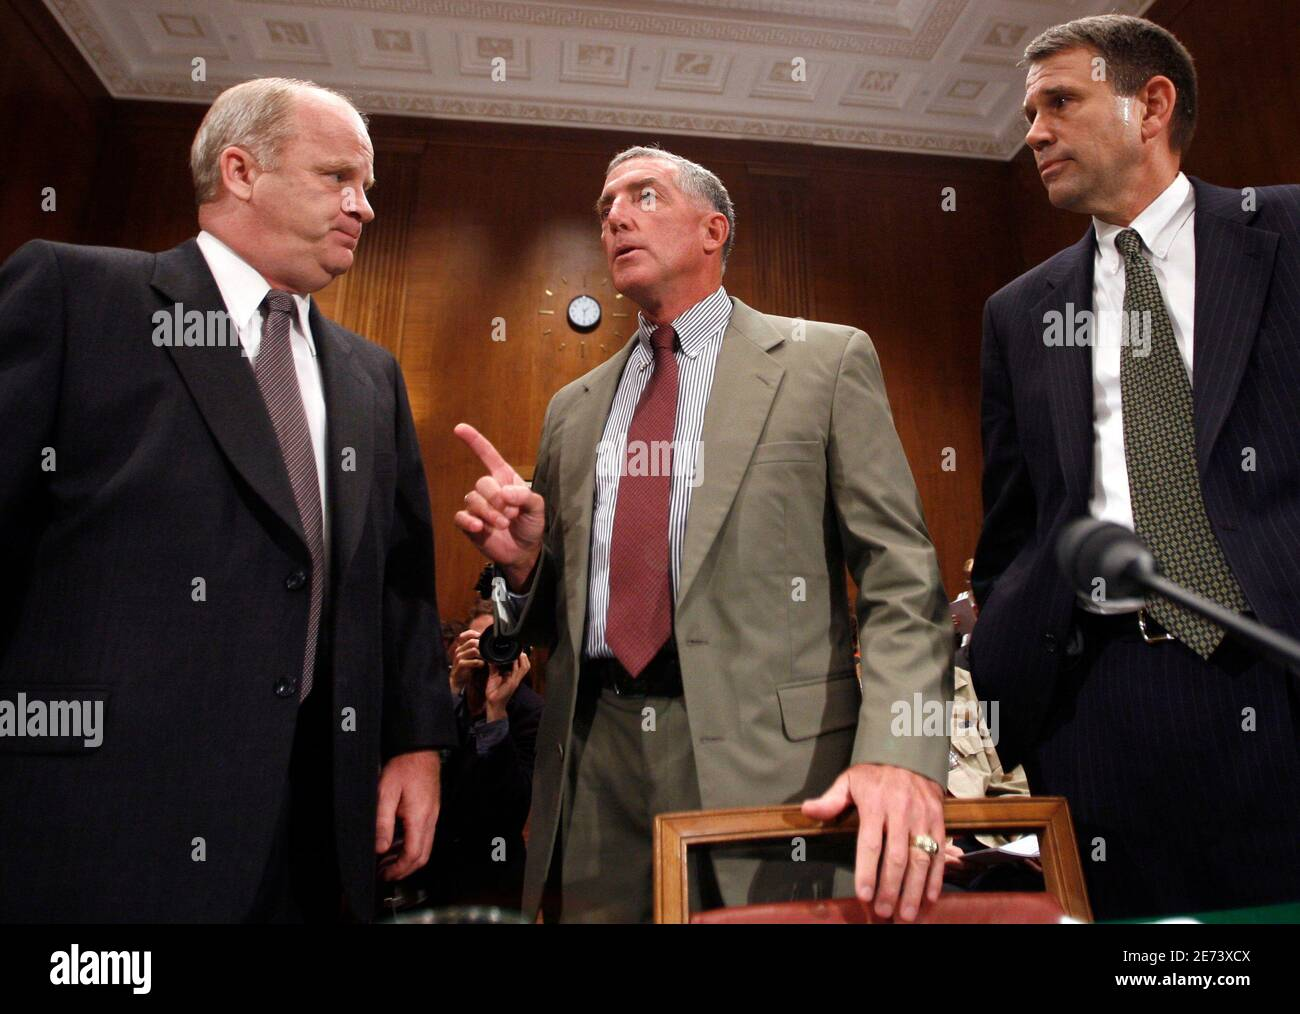 Retired U.S. Army Major Gen. Paul Eaton (c) makes a point to retired U.S. Marine Corps Col. Thomas Hammes (L) and retired U.S. Army Gen. John Batiste before testifying at the Democratic Policy Committee's oversight hearing on Capitol Hill in Washington to discuss the planning and conduct of the war in Iraq September 25, 2006. REUTERS/Kevin Lamarque  (UNITED STATES) Stock Photo